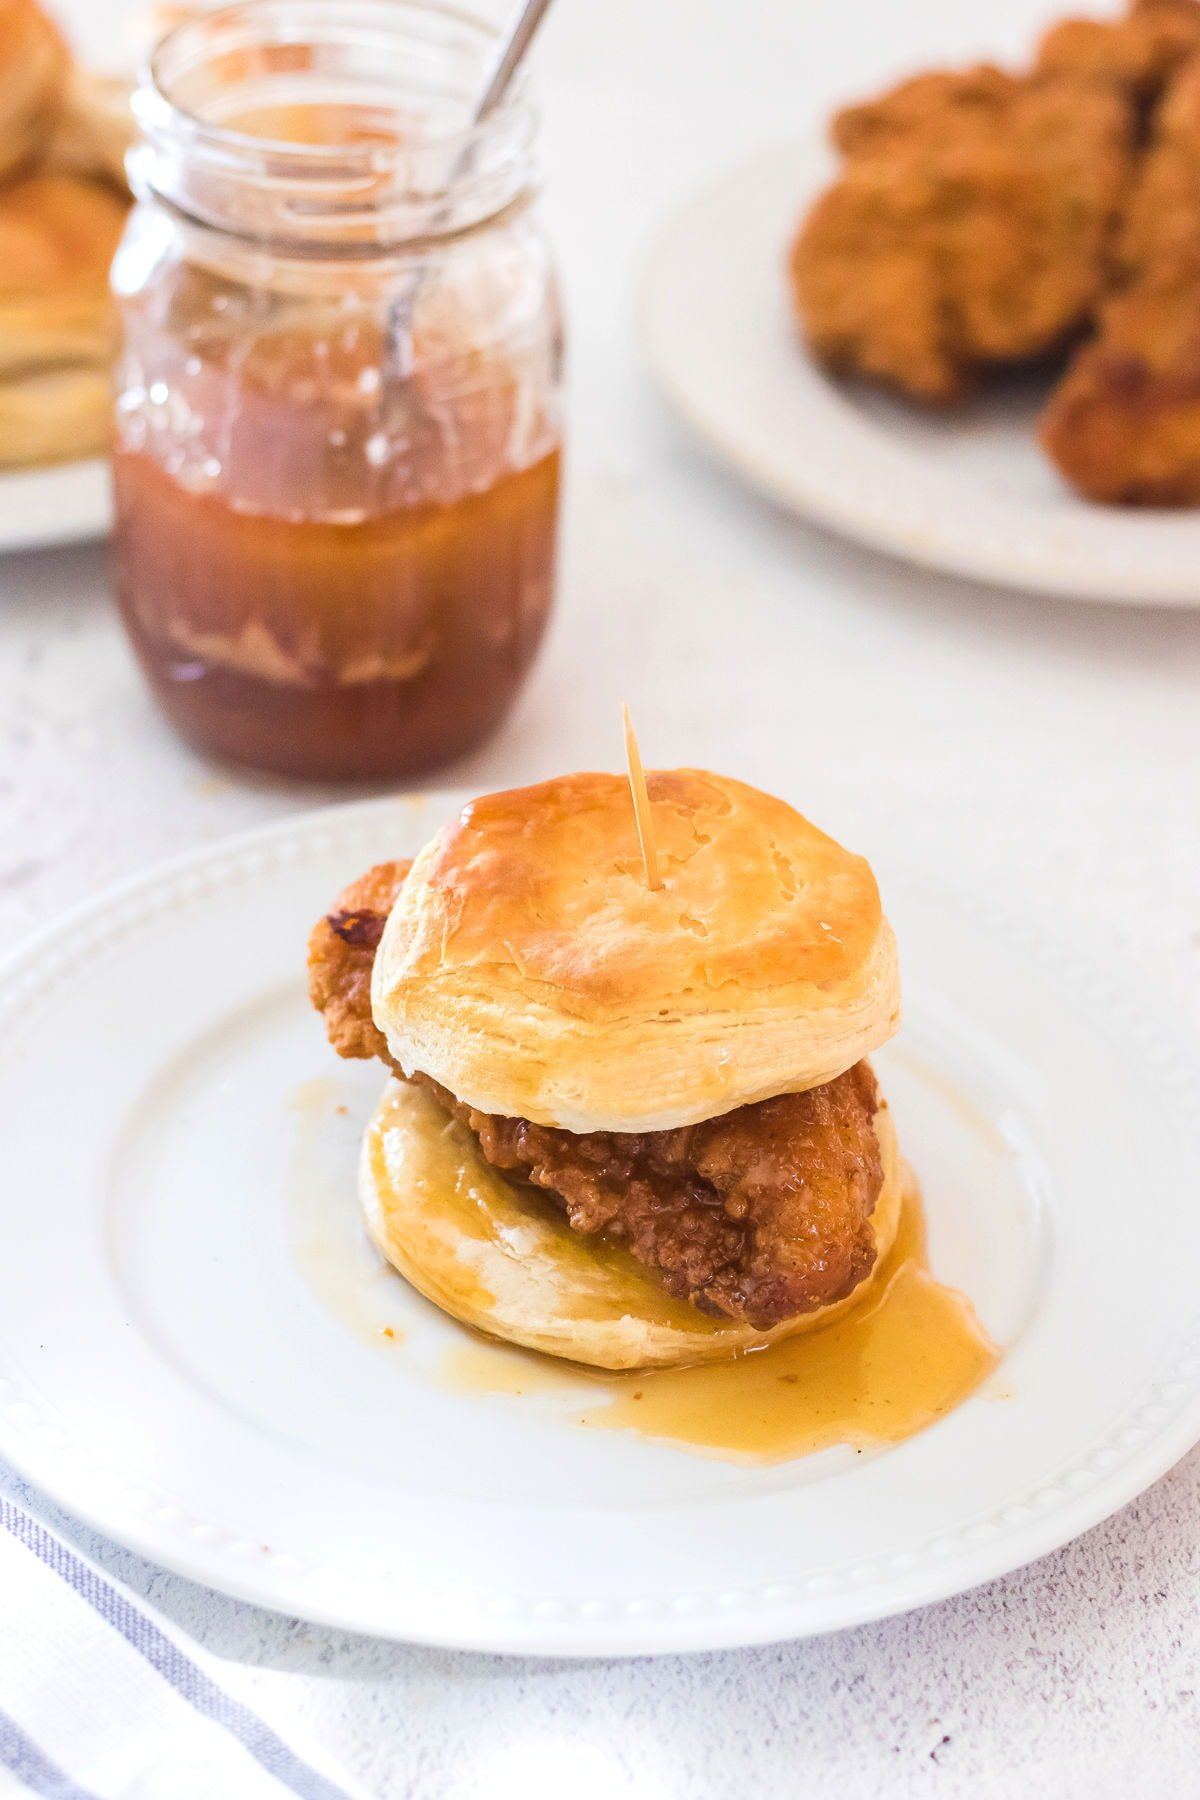 Finished chicken biscuit on a plate with ingredients in the background.